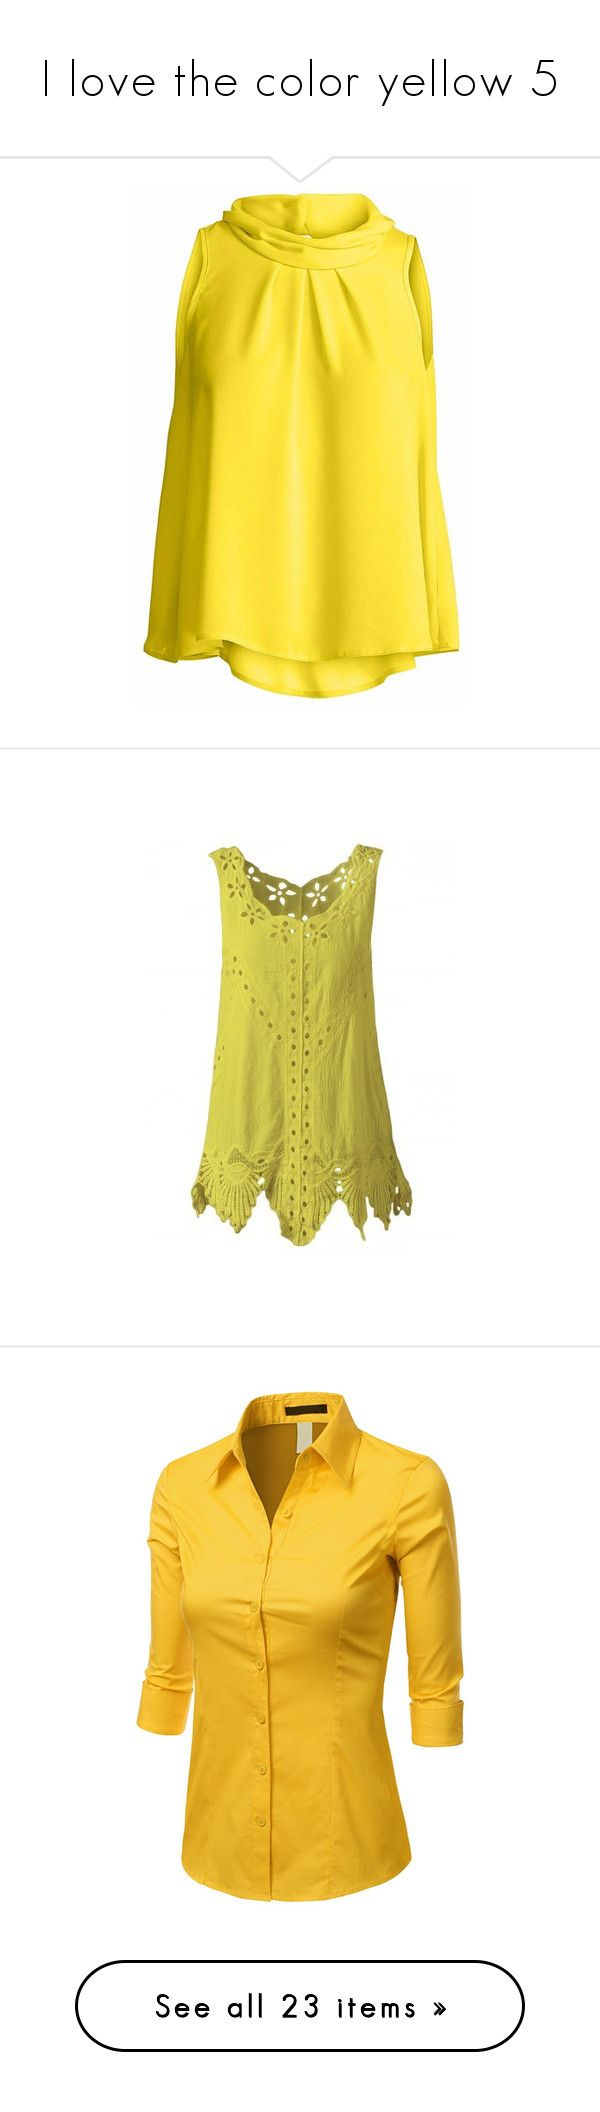 """""""I love the color yellow 5"""" by michi-bruce ❤ liked on Polyvore featuring tops, reversible tank, pleated top, reversible top, roll top, yellow tank top, blouses, boho tops, scoop neck top and scoopneck top"""